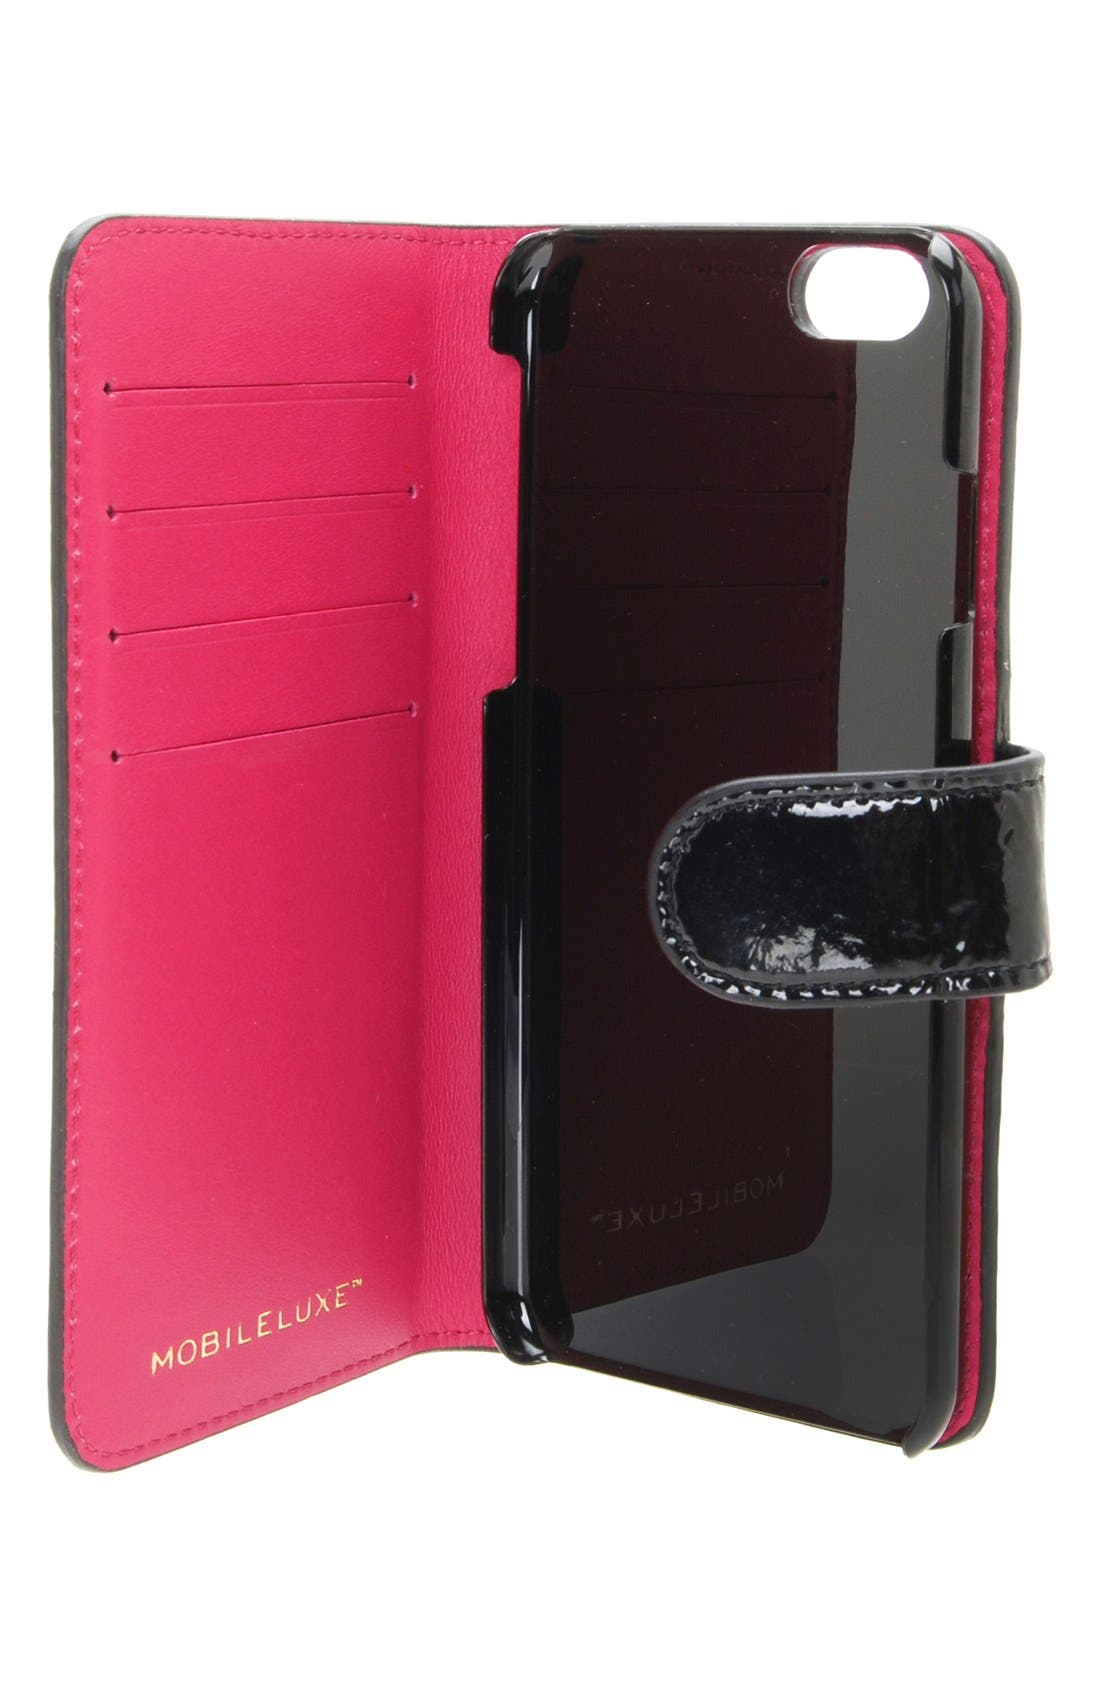 iPhone 6/6s Wallet Case,                             Alternate thumbnail 3, color,                             Patent Black/ Fuchsia